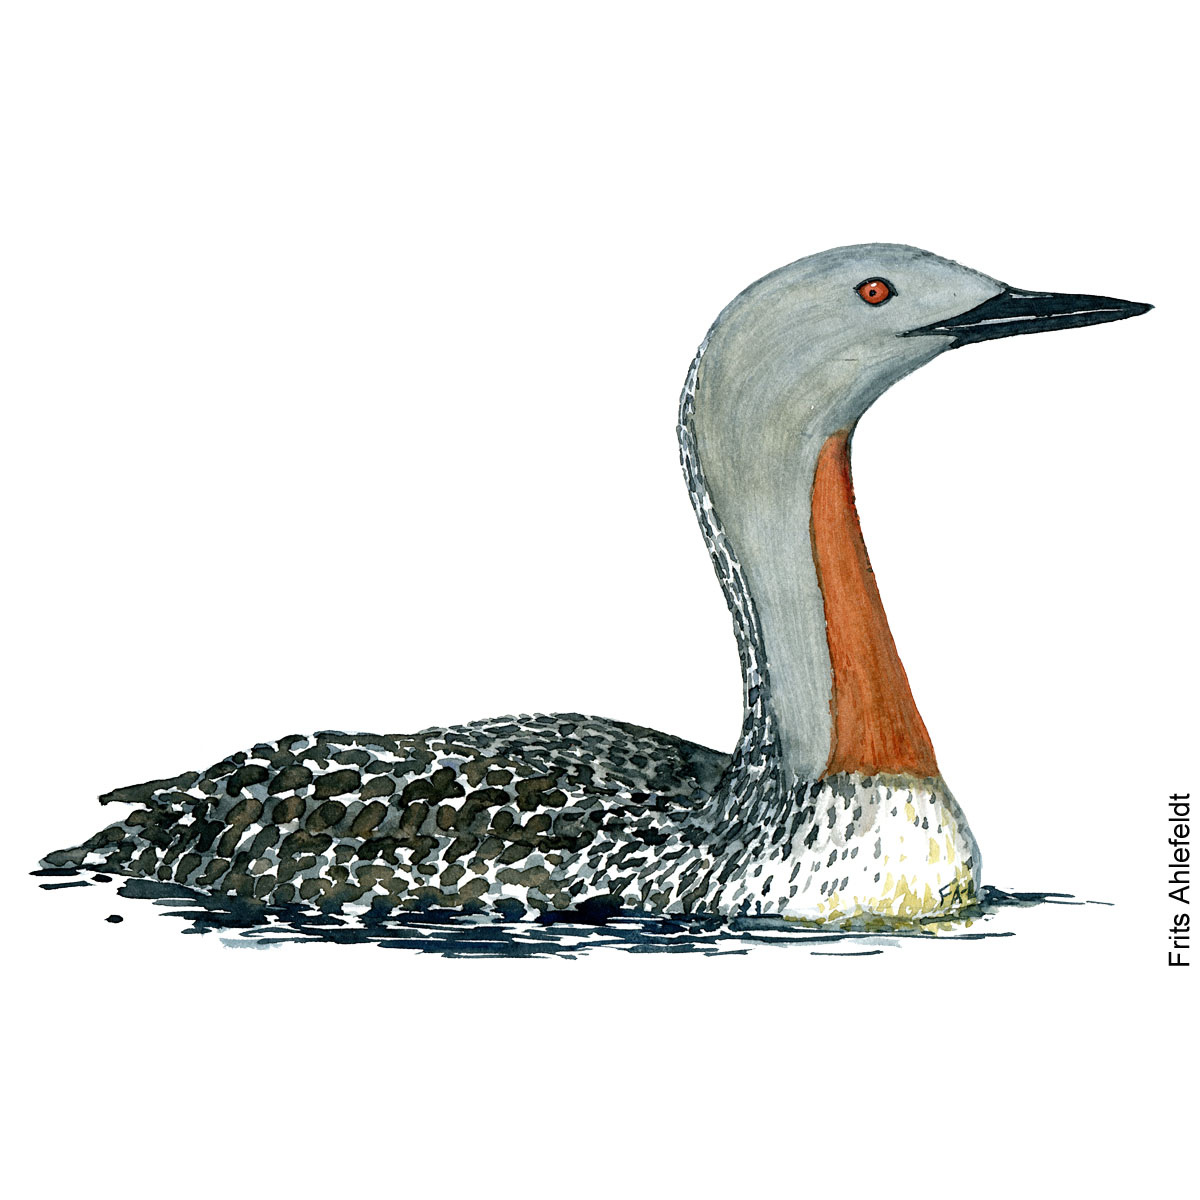 Red throated loon. Bird watercolor illustration handmade by Frits Ahlefeldt